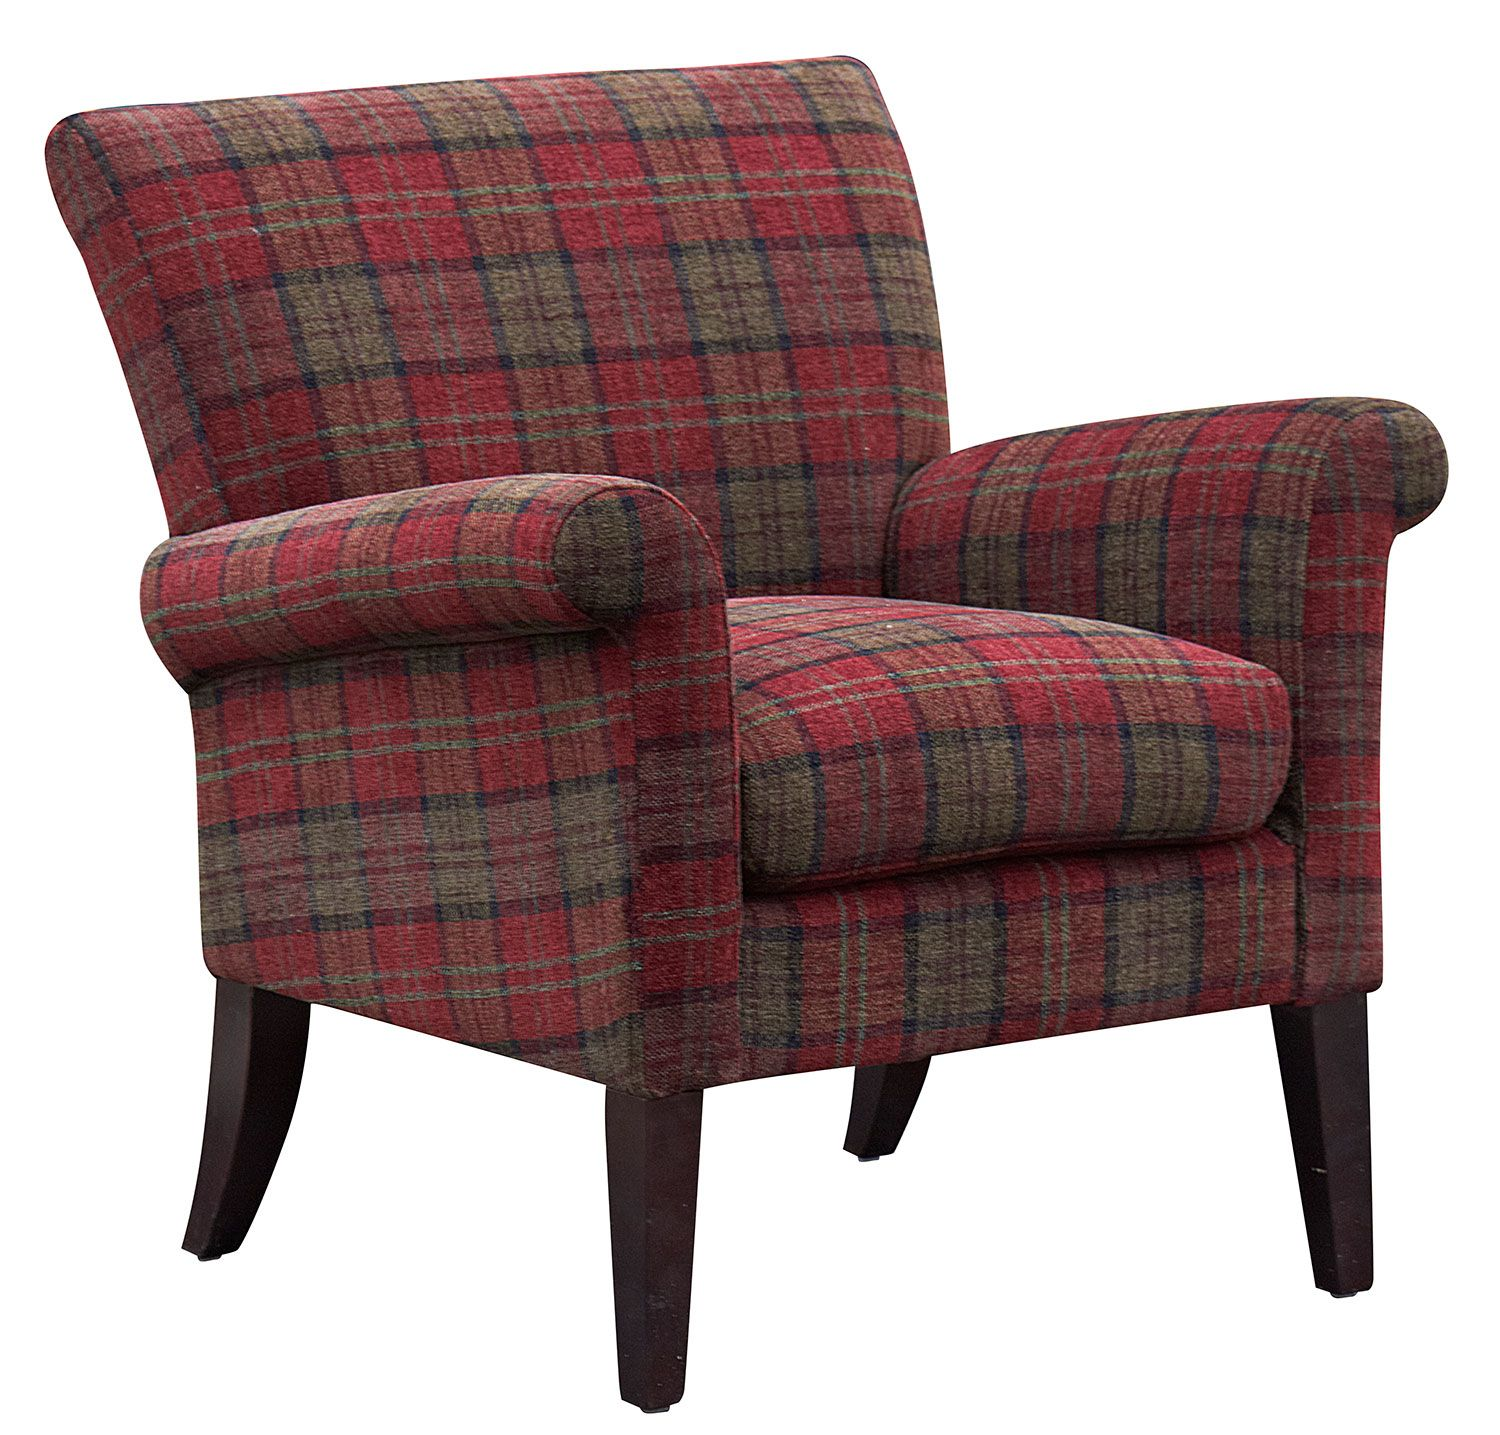 The Range Living Room Furniture Buy The Highcliffe Red Tartan Armchair Sofas And Chairs